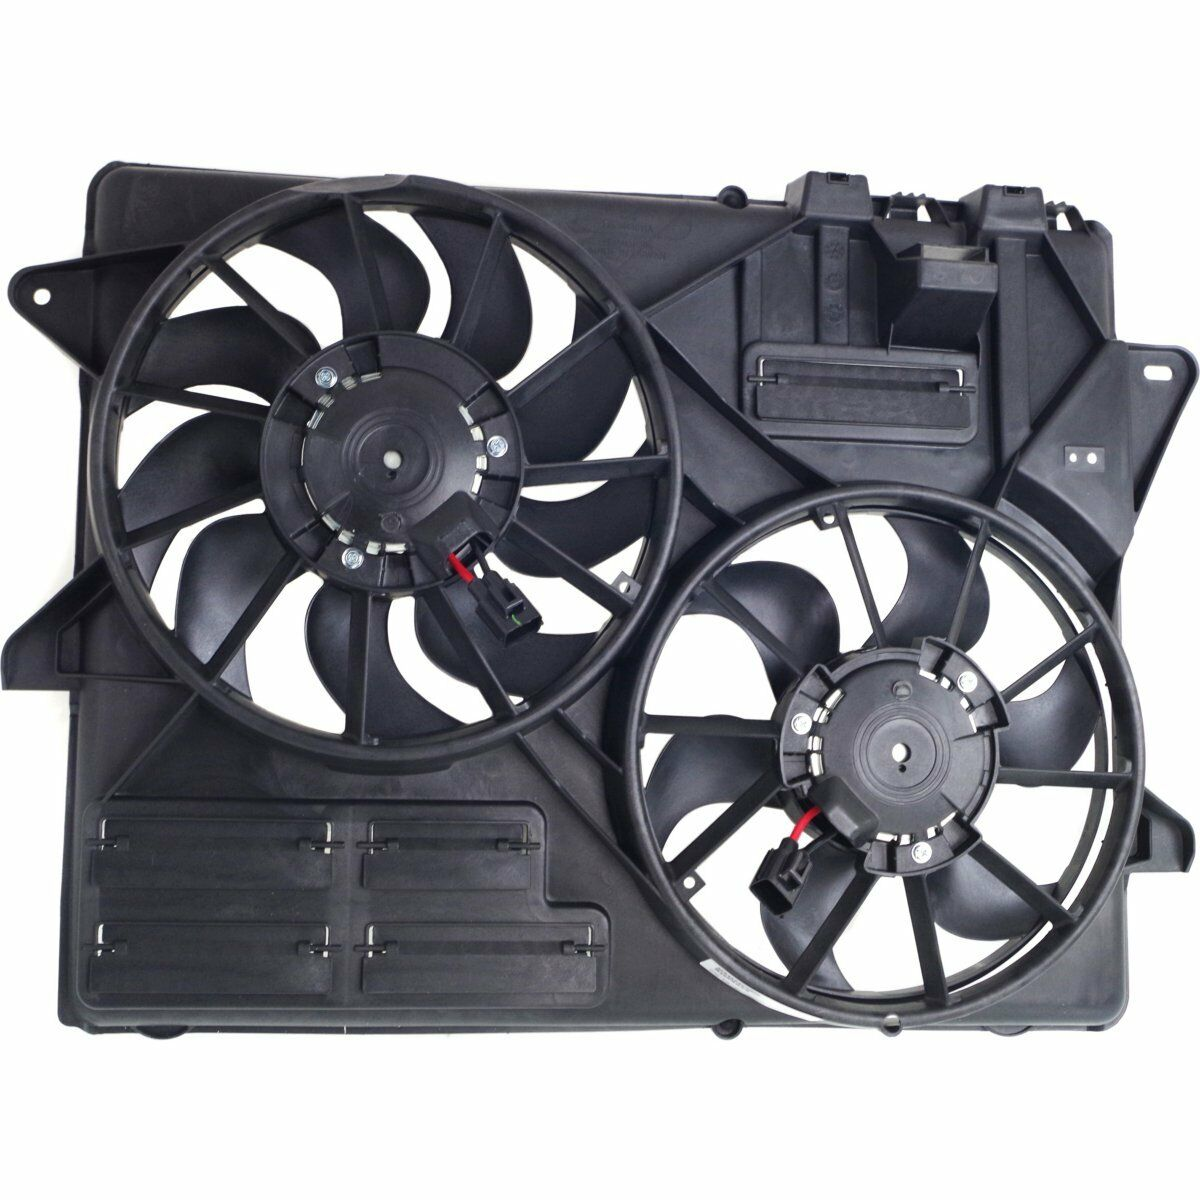 Dual Radiator and Condenser Fan Assembly TYC 623310 fits 15-19 Ford Mustang